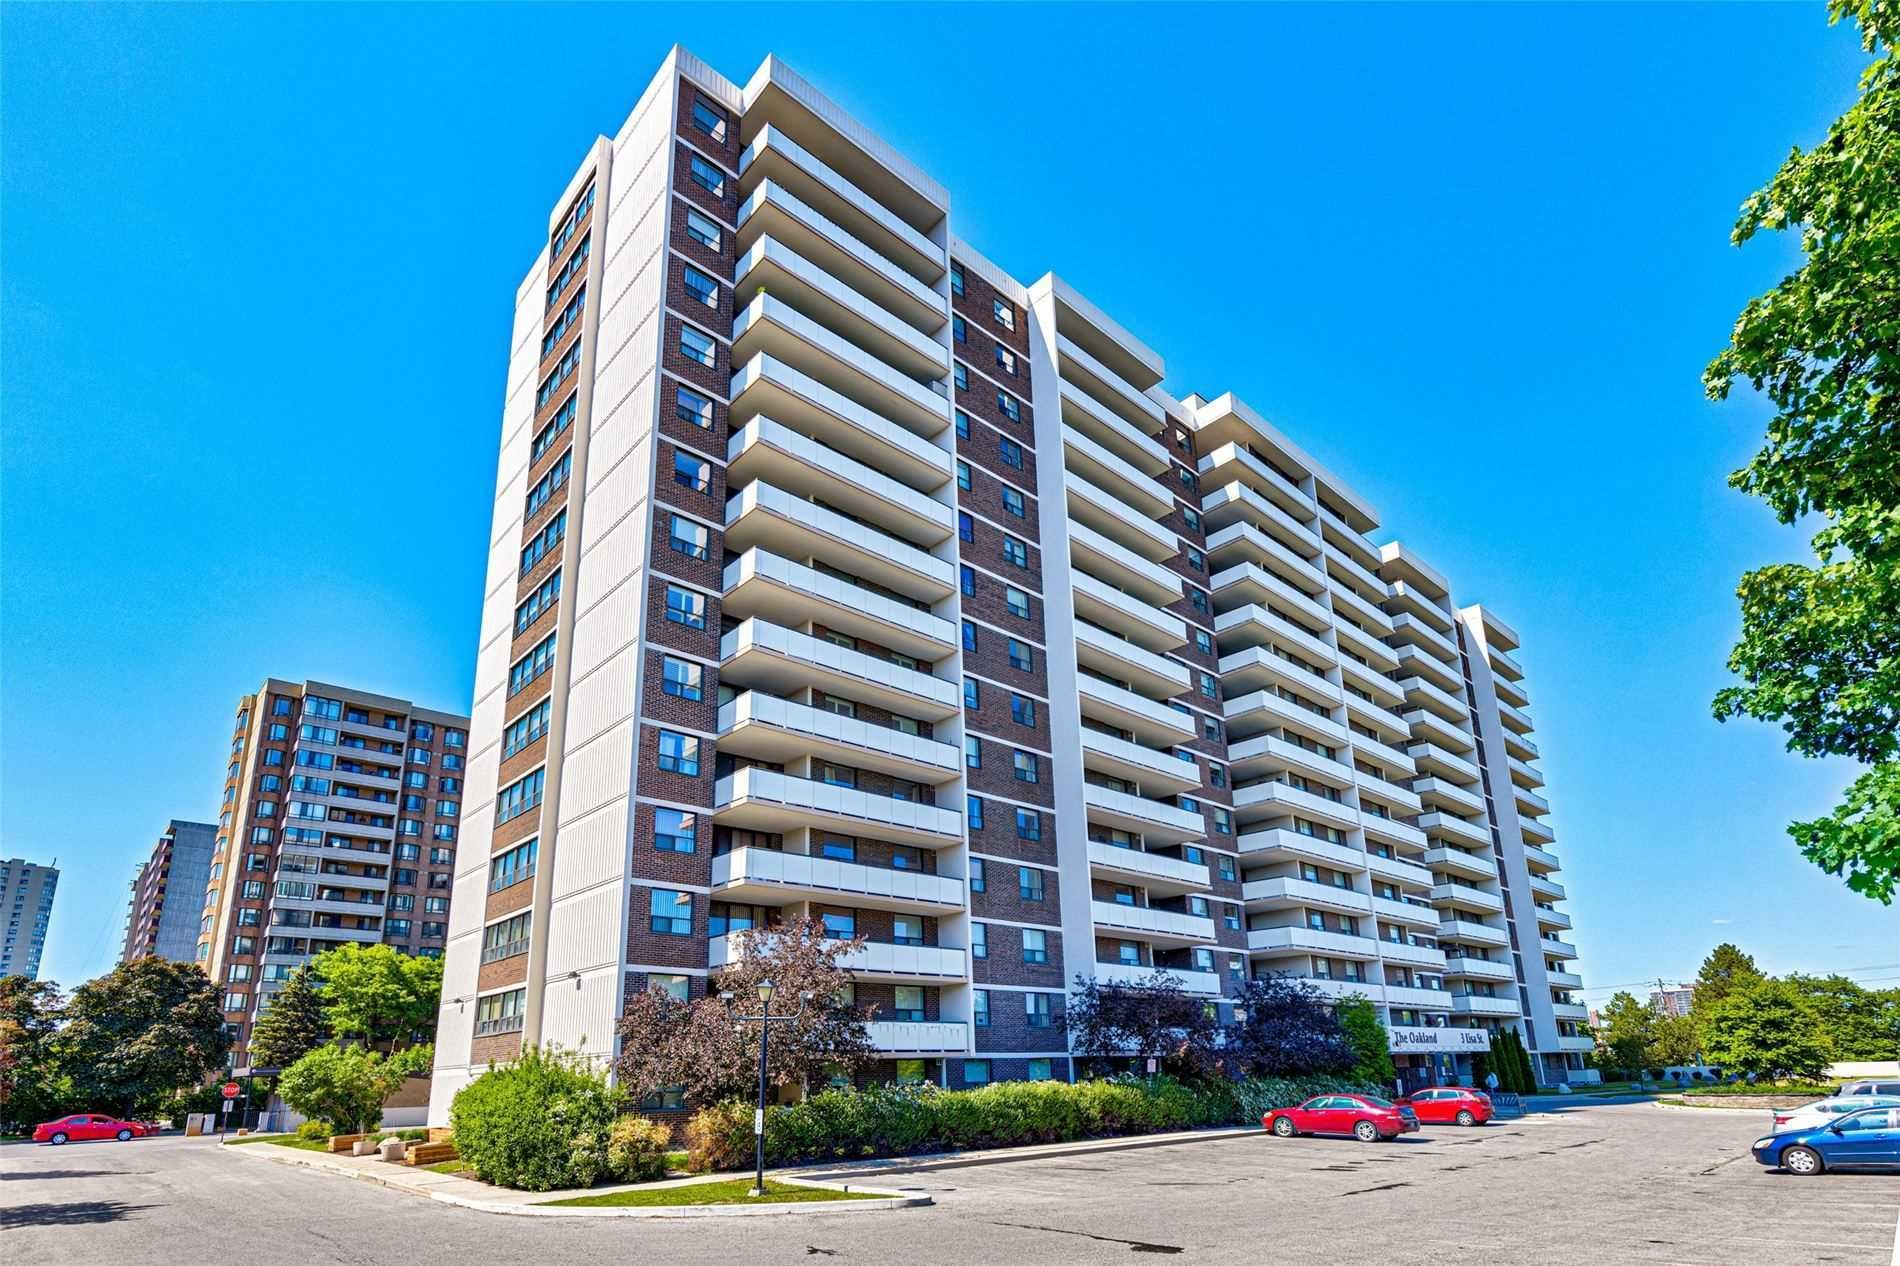 3 Lisa St, unit 611 for sale in Toronto - image #1